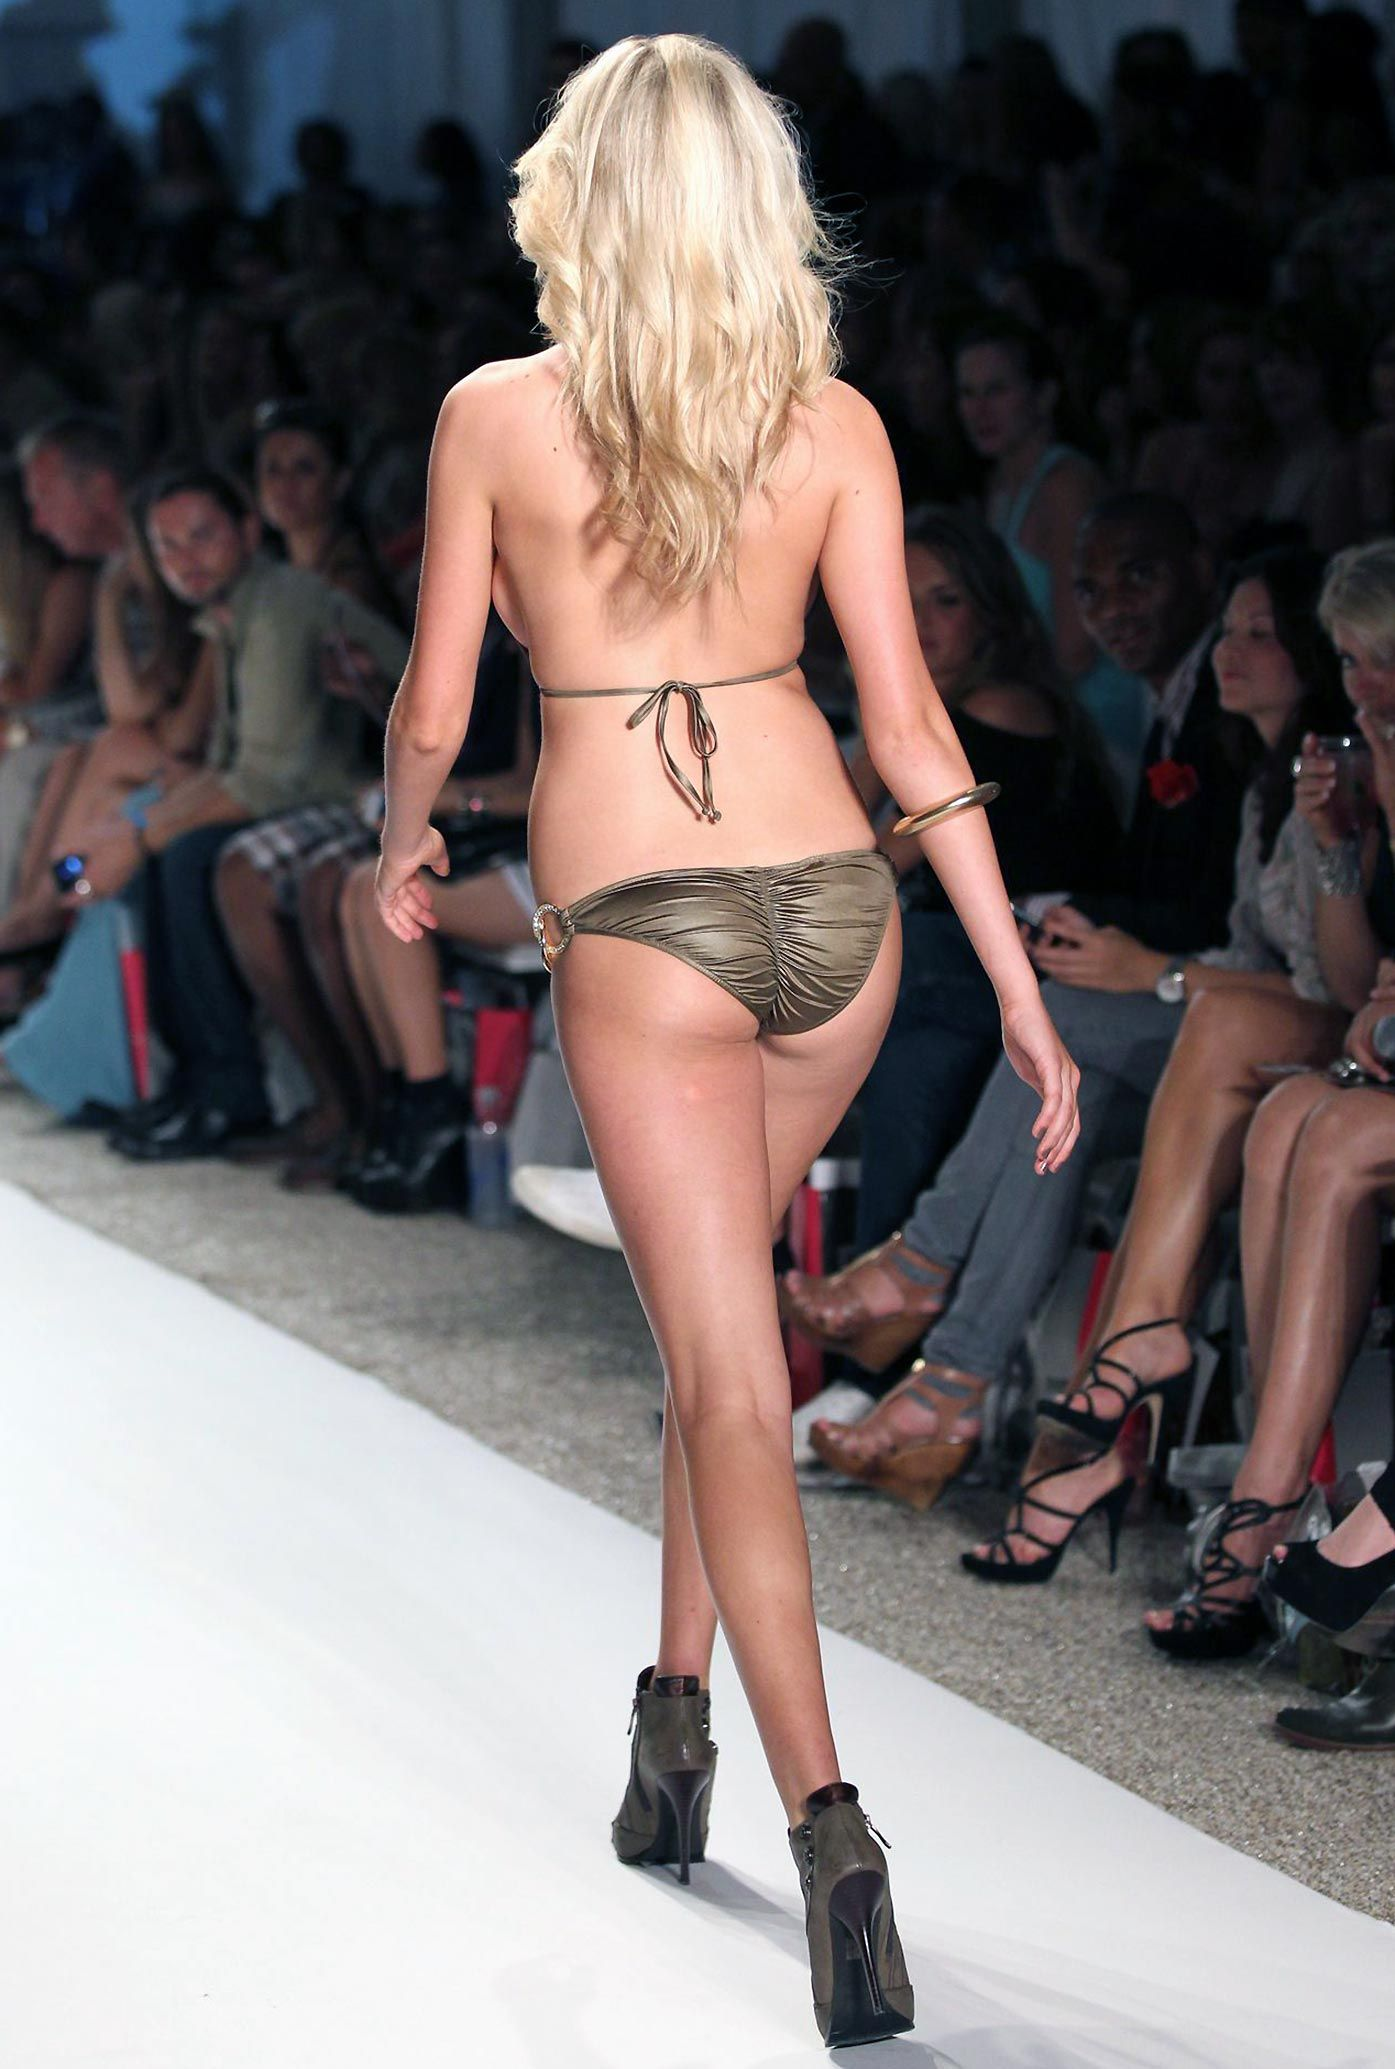 Kate Upton Nude Leaked The Fappening 0076